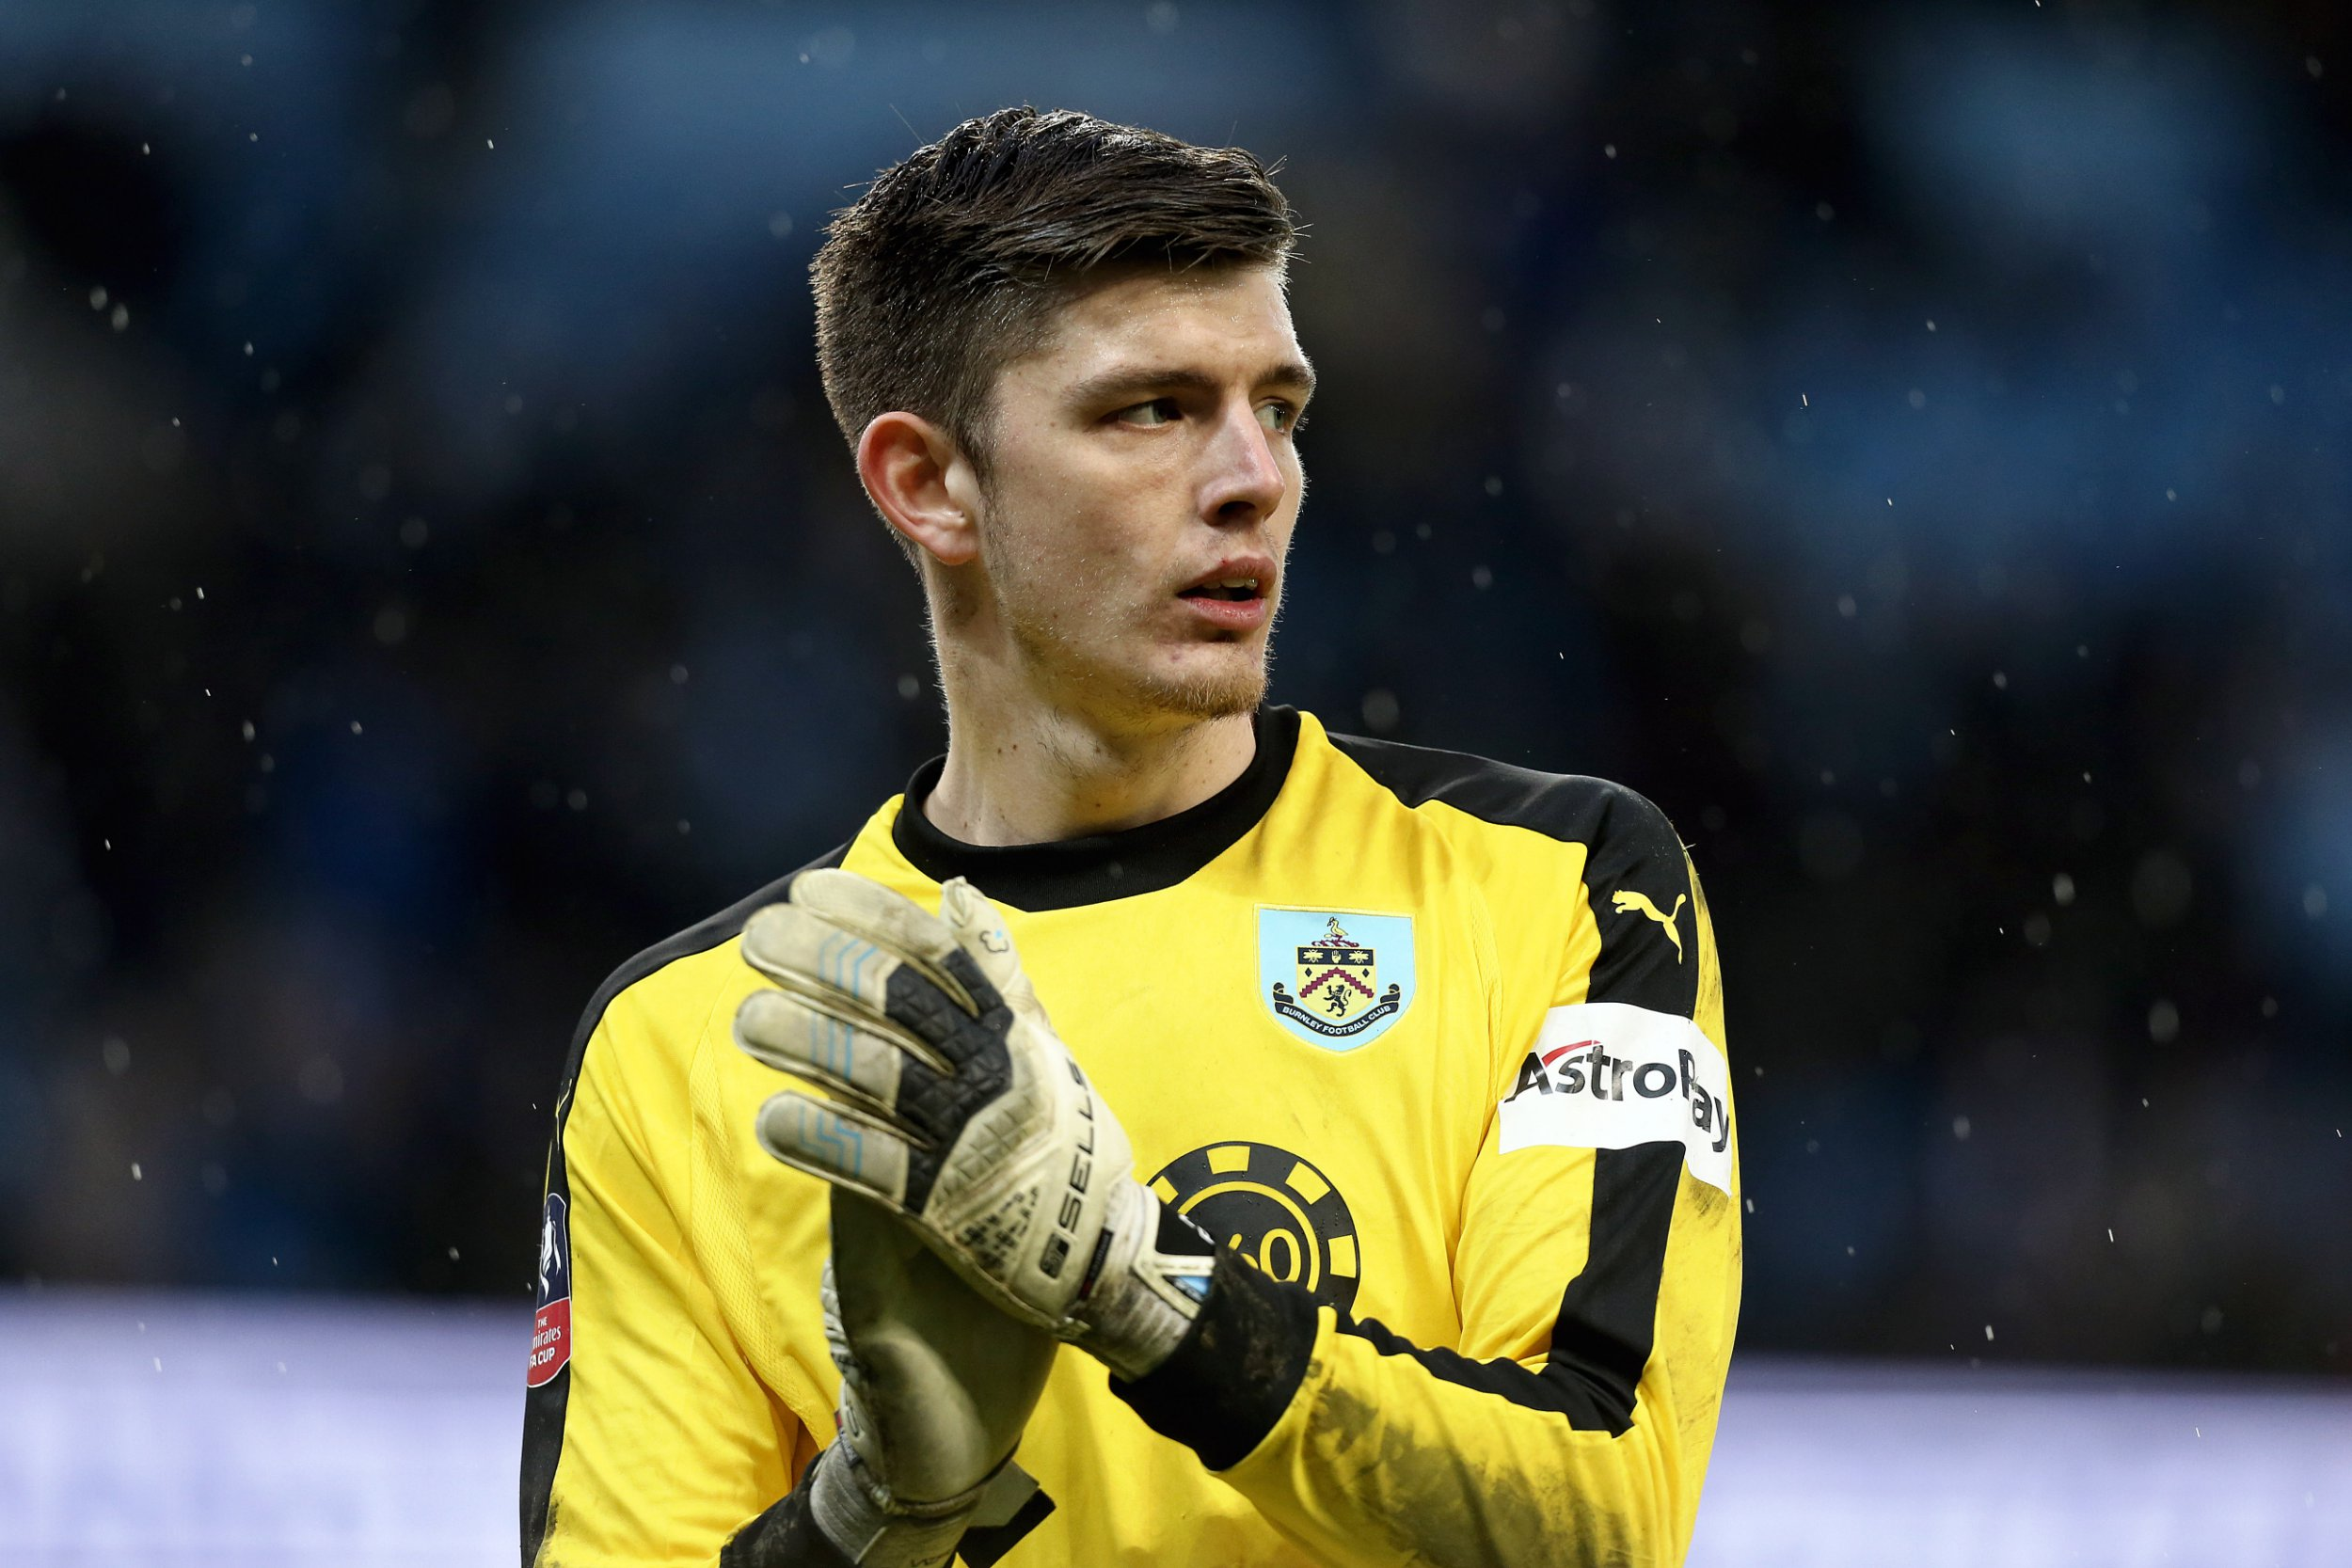 MANCHESTER, ENGLAND - JANUARY 26: Burnley's Nick Pope during the FA Cup Fourth Round match between Manchester City and Burnley at Etihad Stadium on January 26, 2019 in Manchester, United Kingdom. (Photo by Rich Linley - CameraSport via Getty Images)